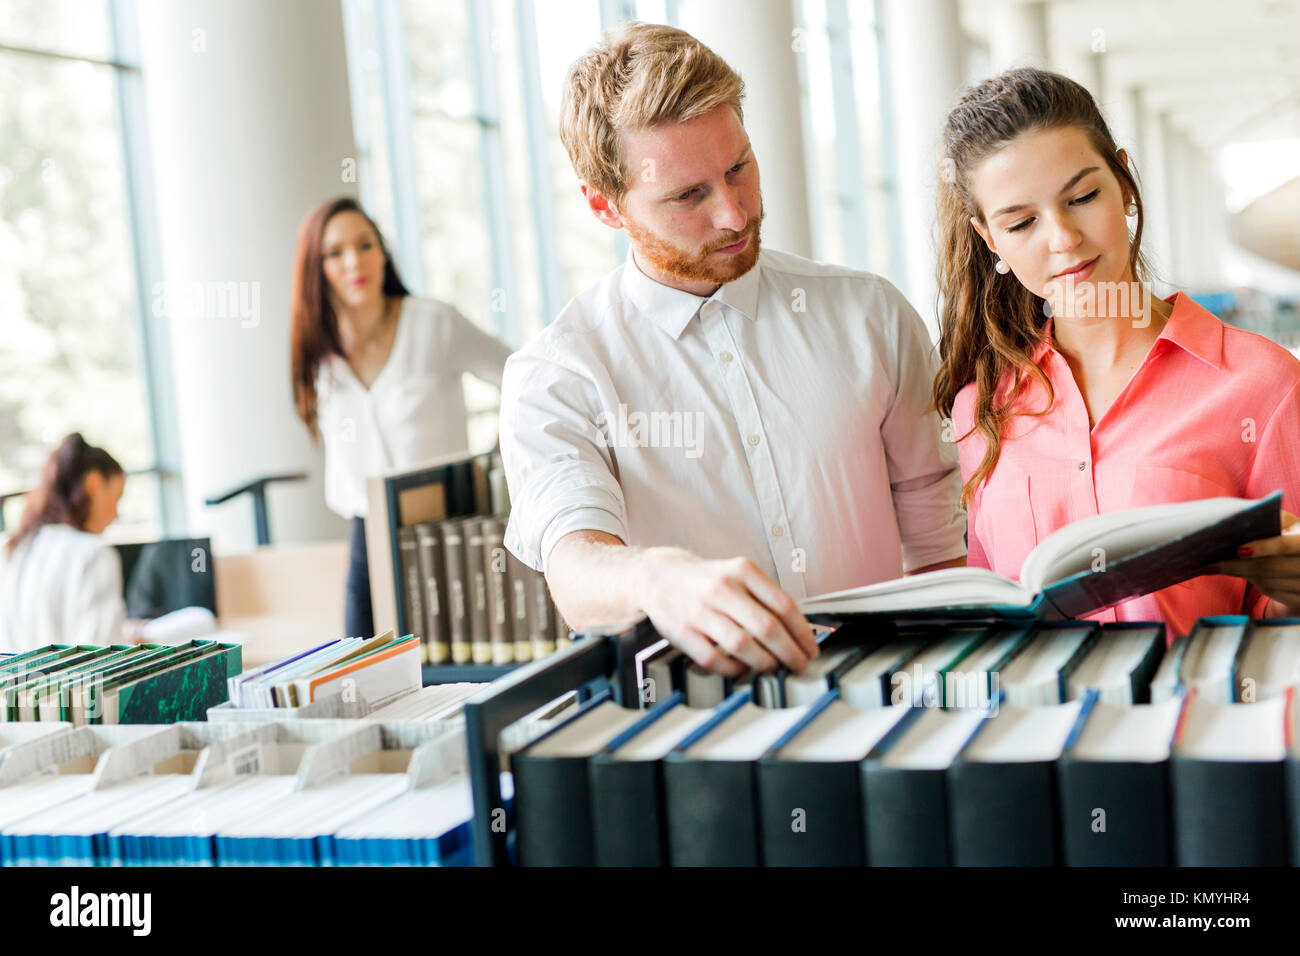 Two students reading and studying in library - Stock Image